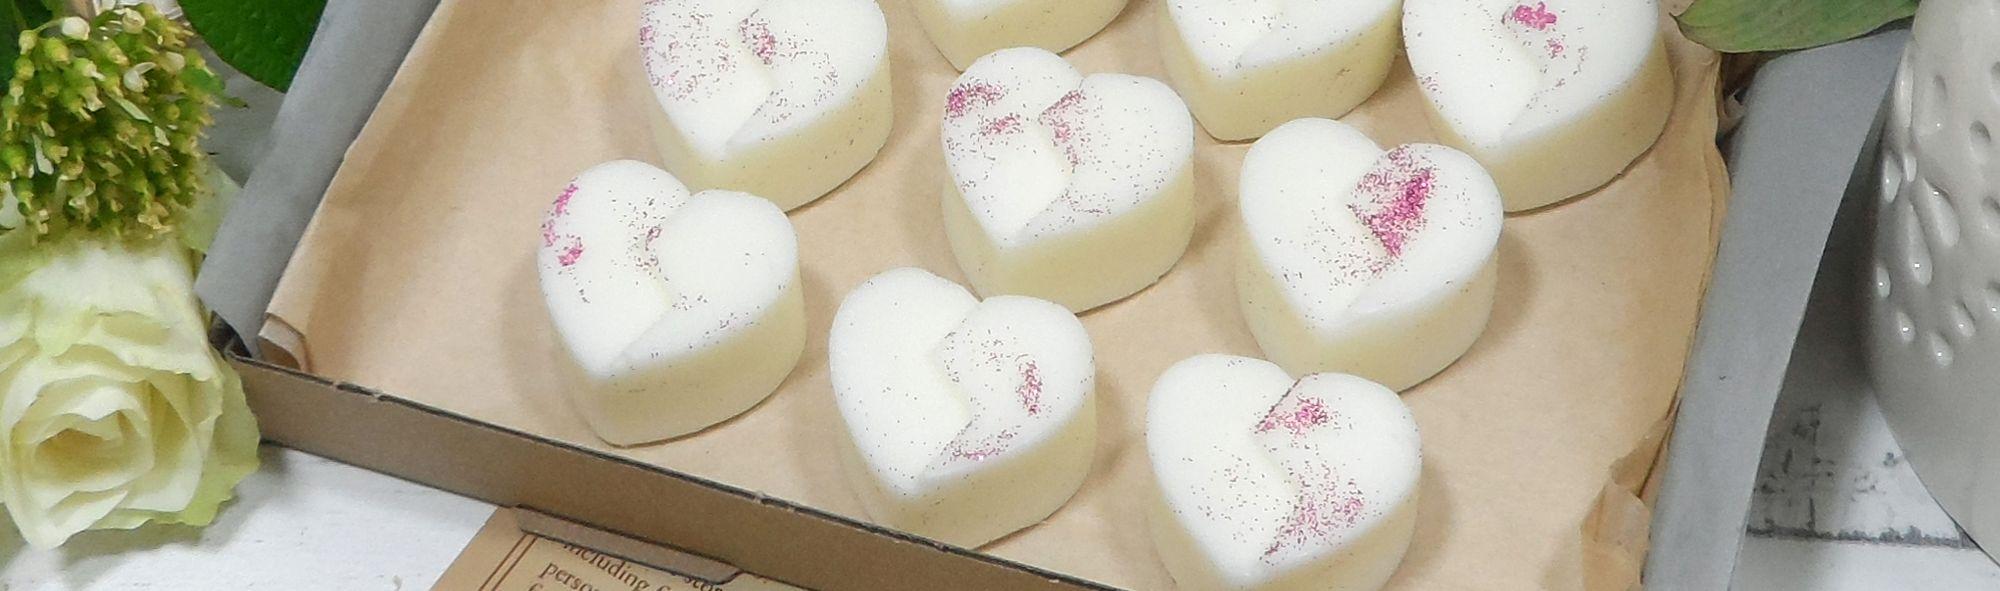 Aroma Wax Scented Melts